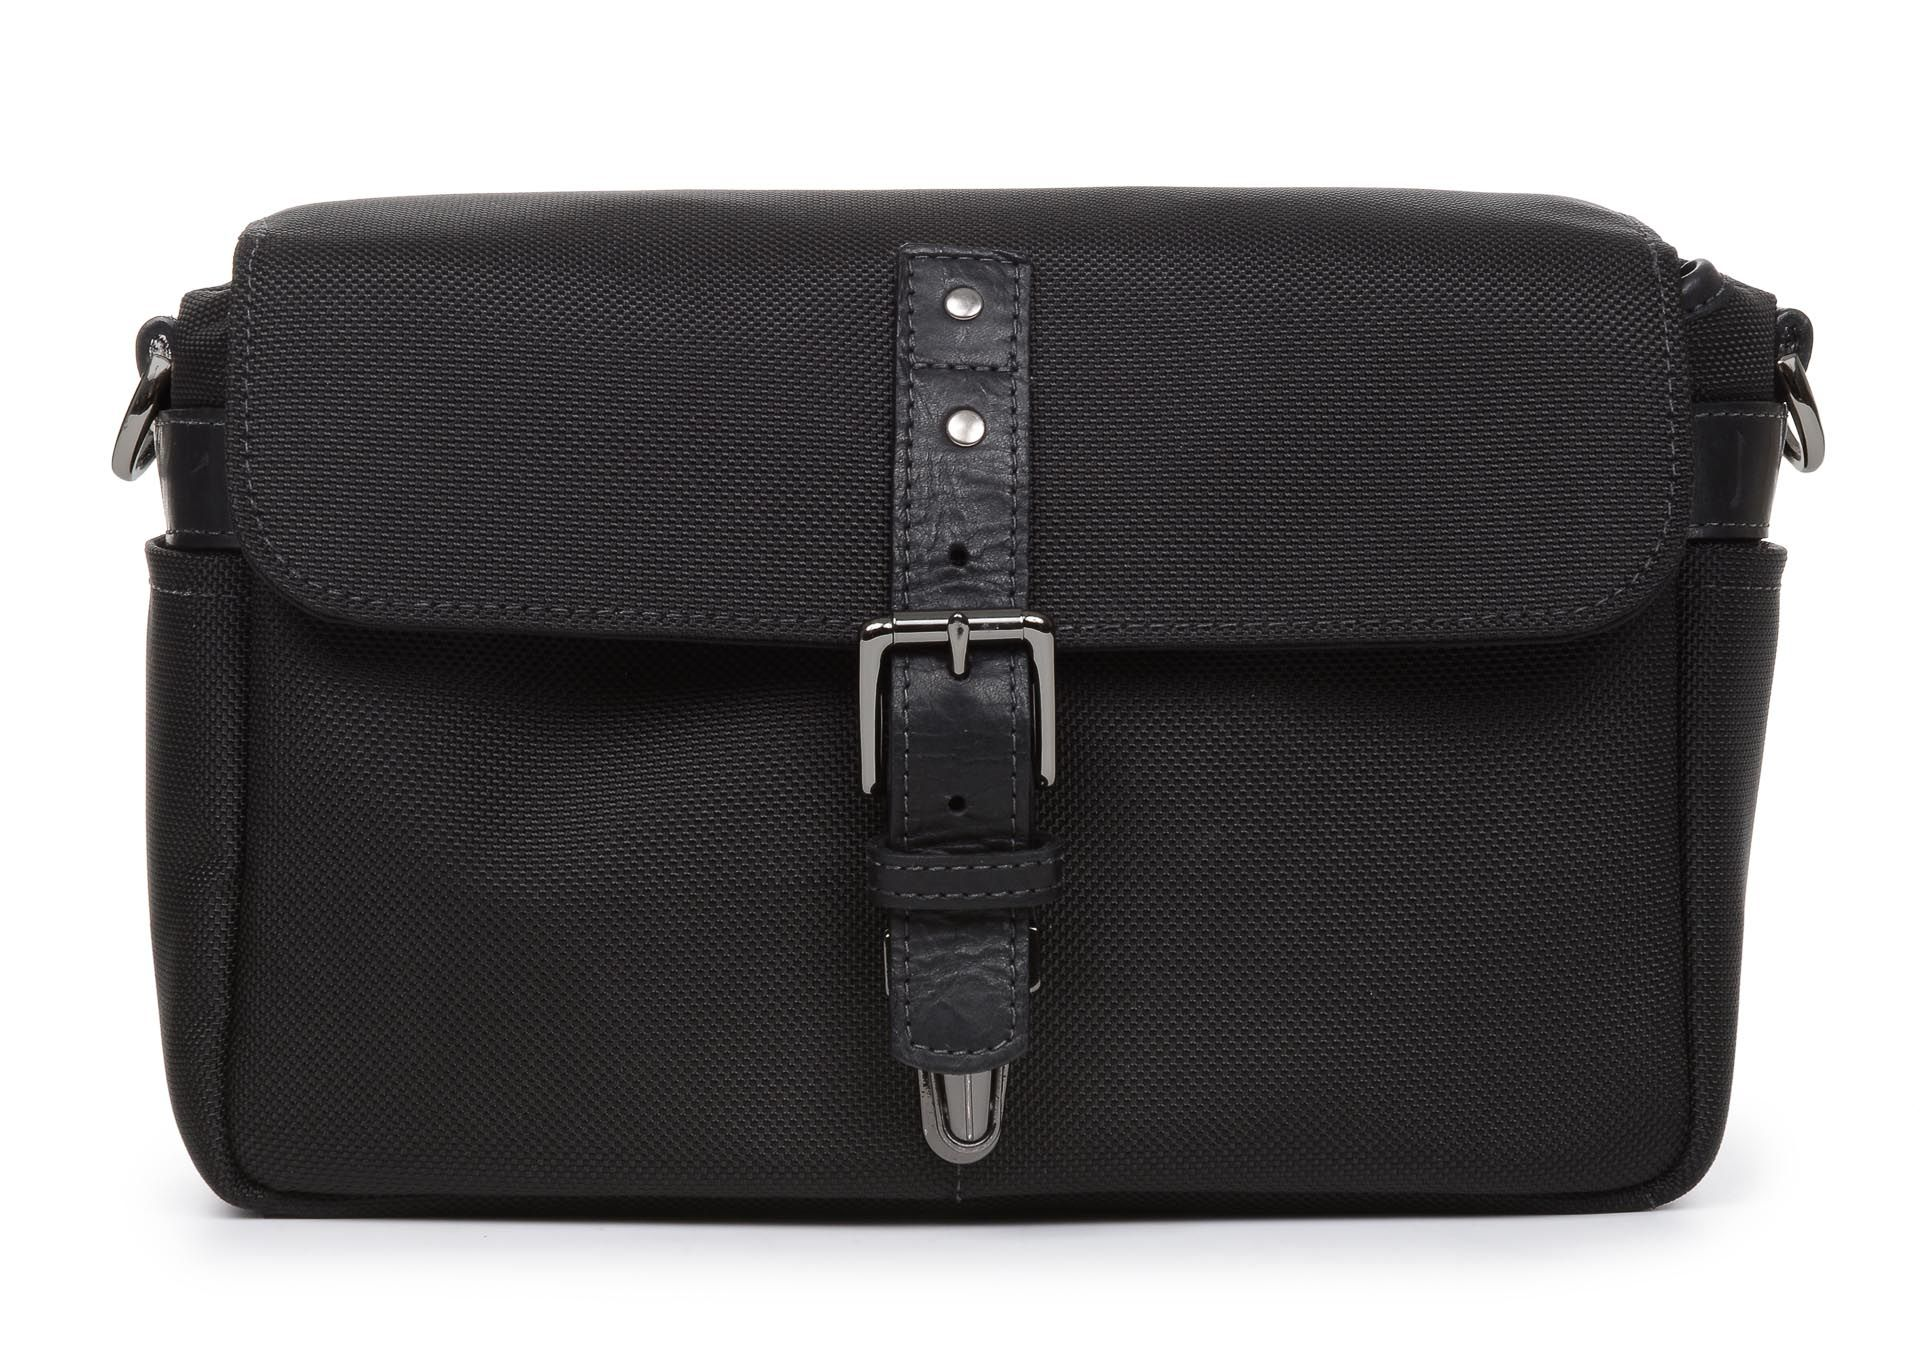 The New Nylon Bowery Camera Bag Our Lightest